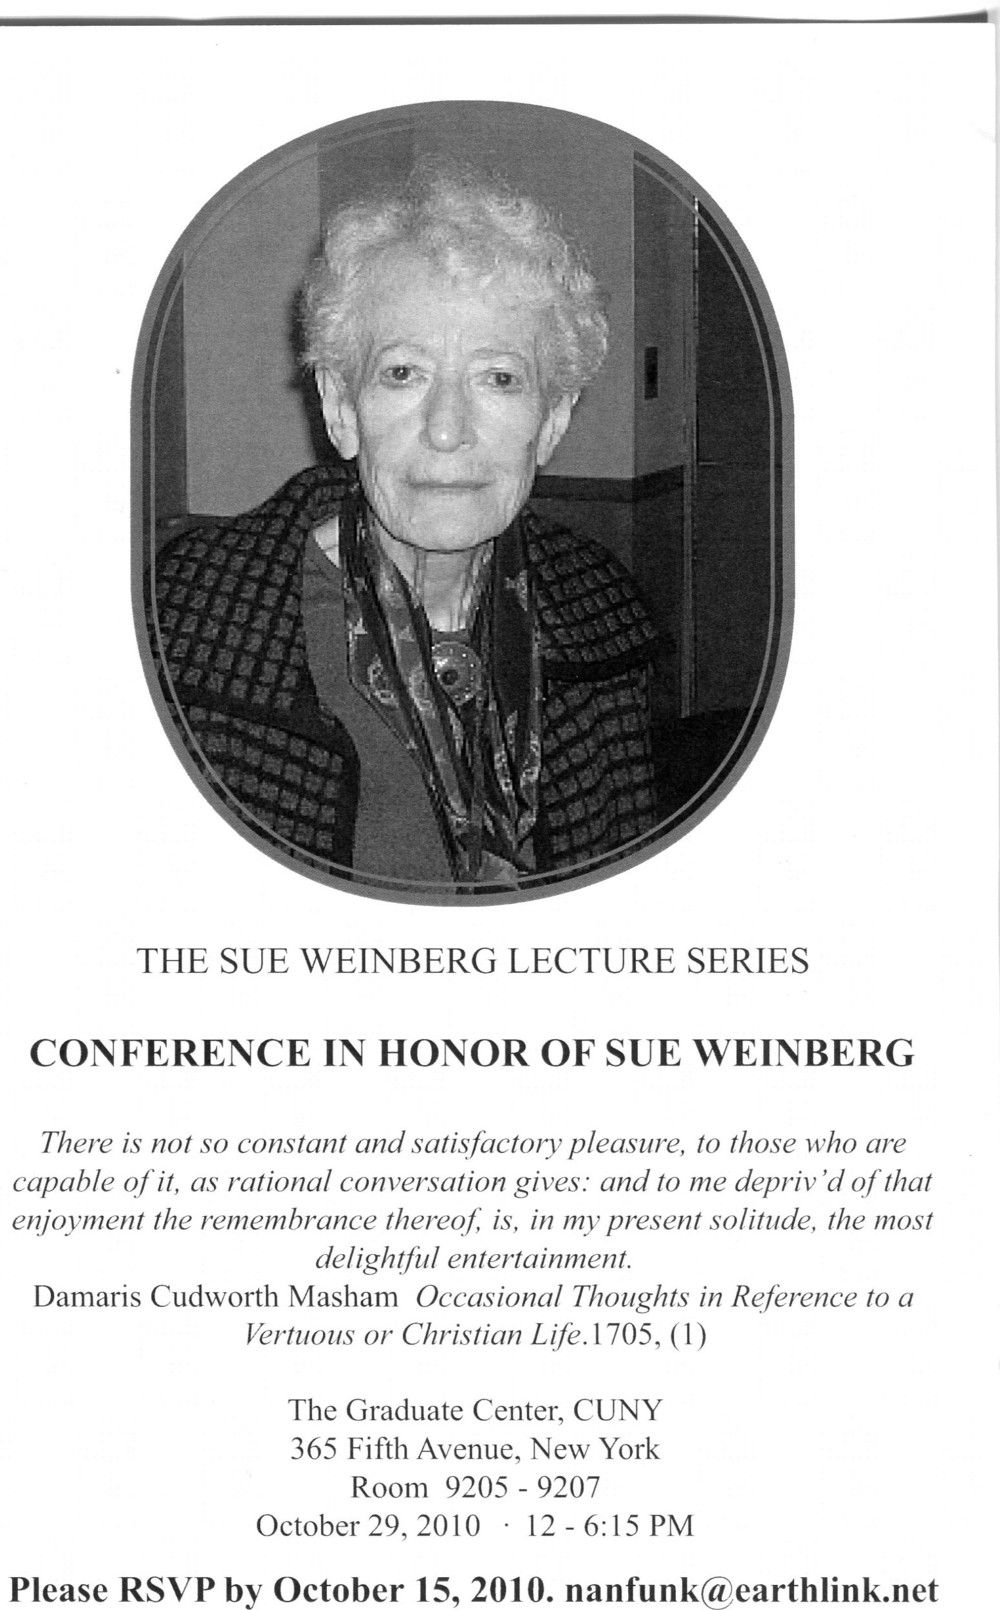 Program cover for Conference in Honor of Sue Weinberg, 2010.  Society for Women in Philosophy Collection, Feminist Theory Archive, Brown University